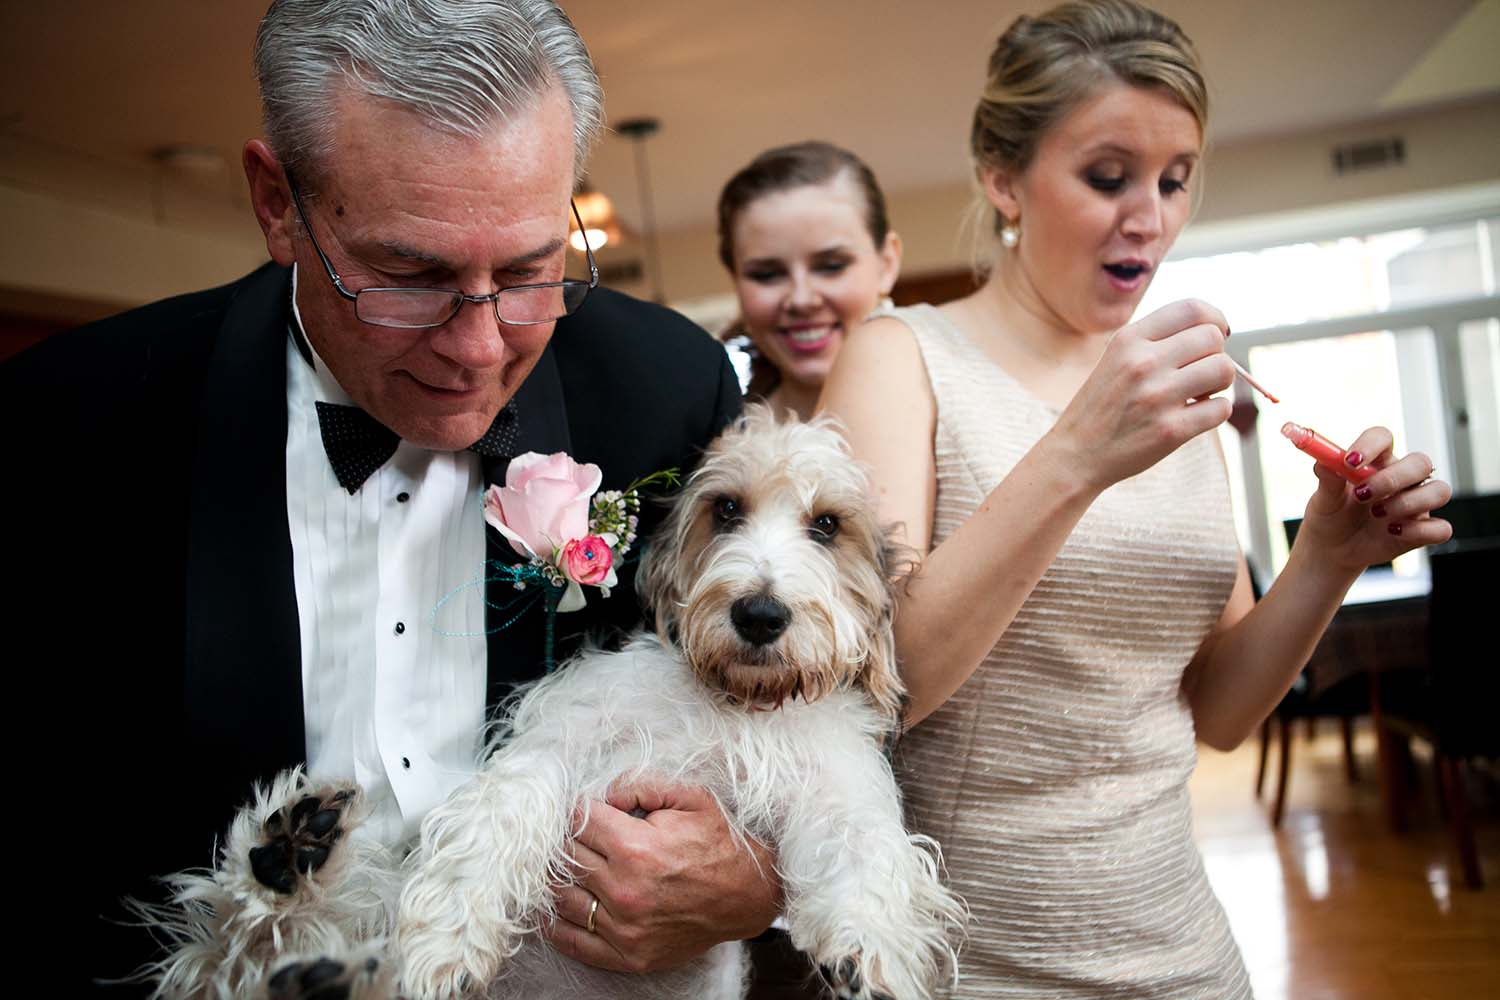 Bridesmaids getting ready day of wedding documentary photography, father of the bride, pet dog, Chicago suburb Park Ridge